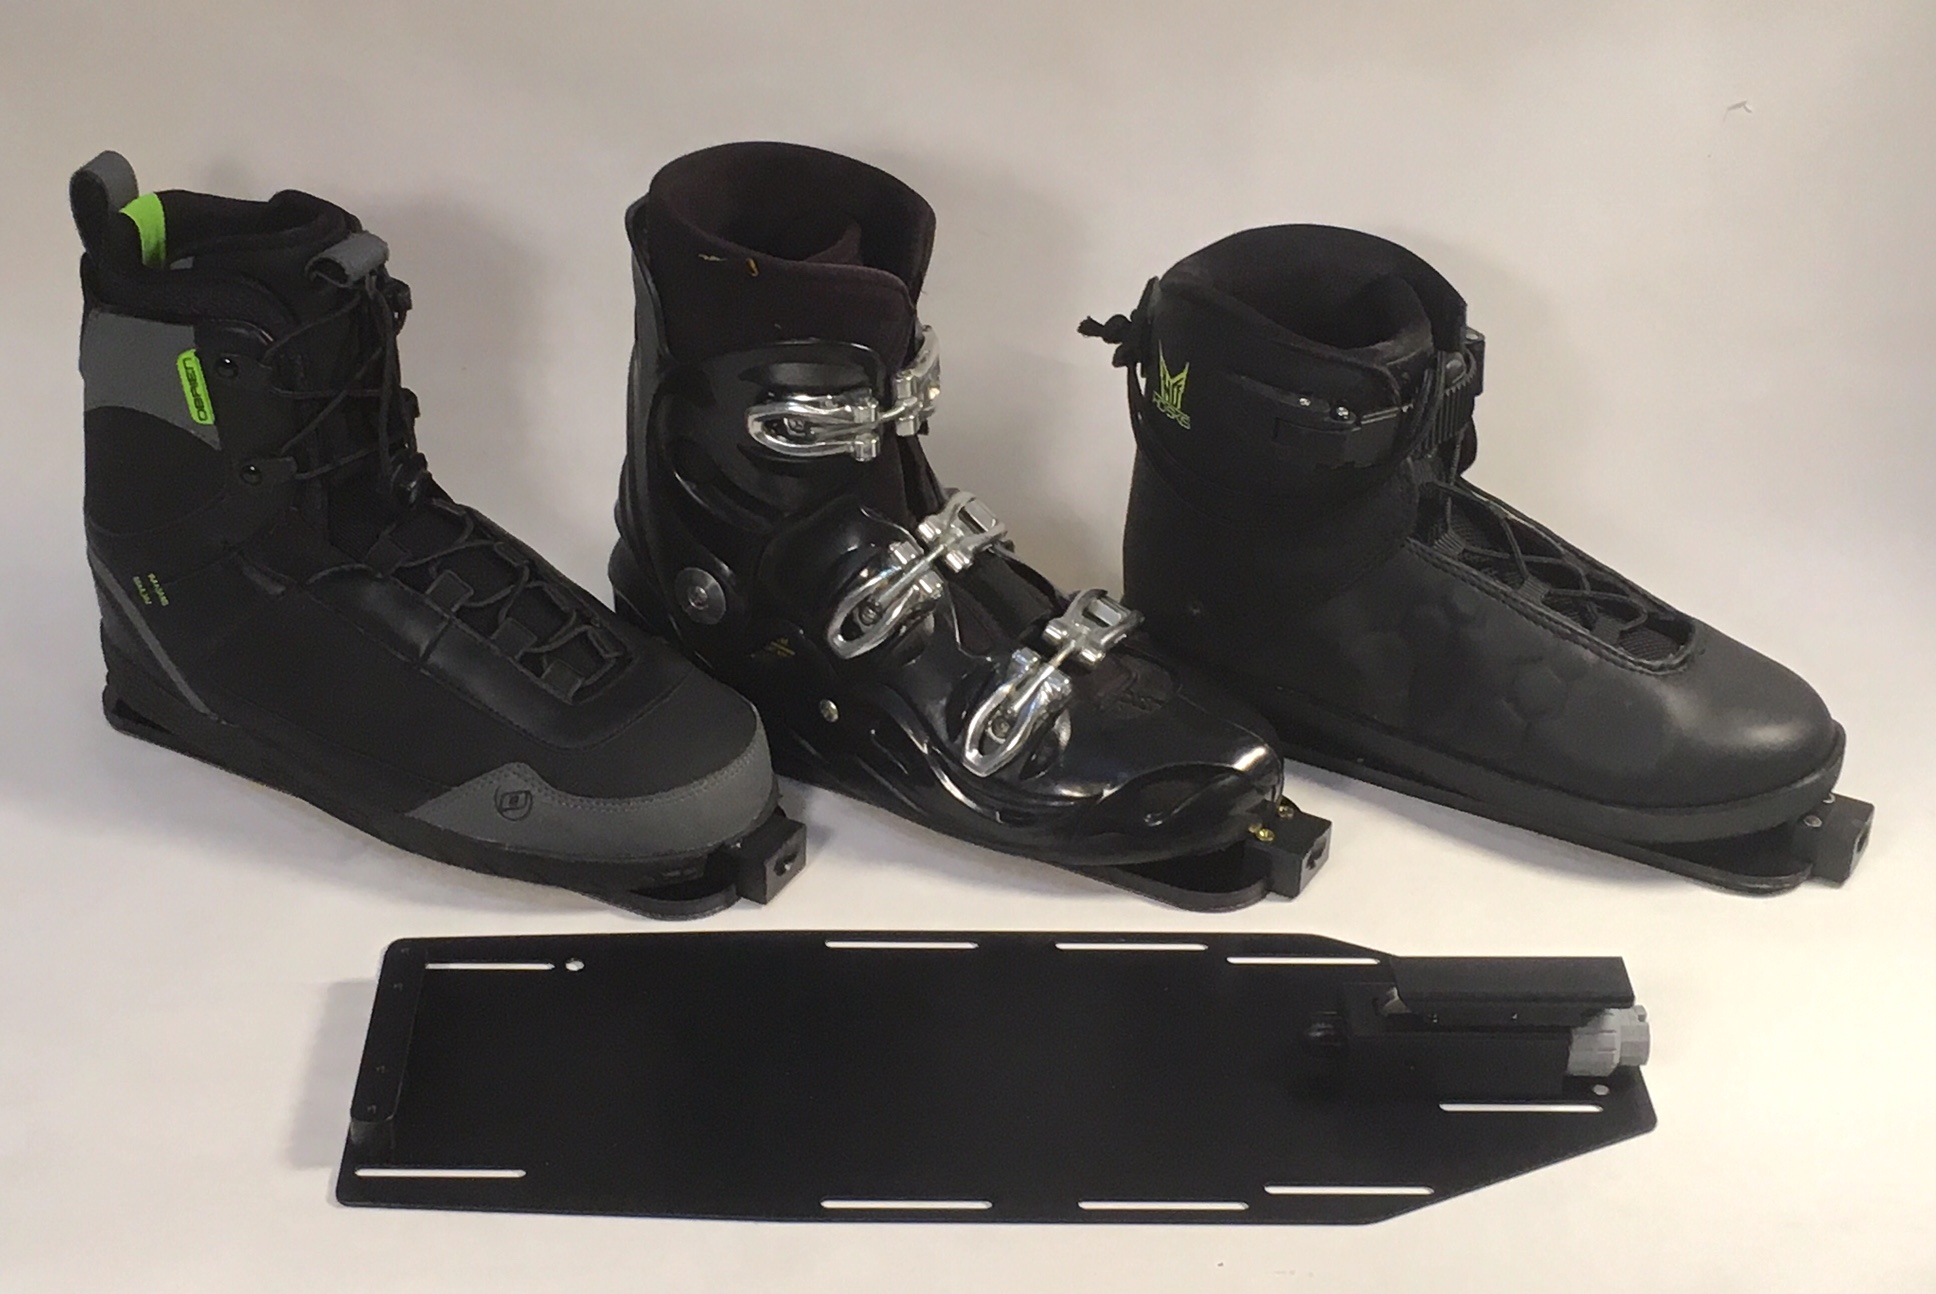 Use any style boot on the MOB!